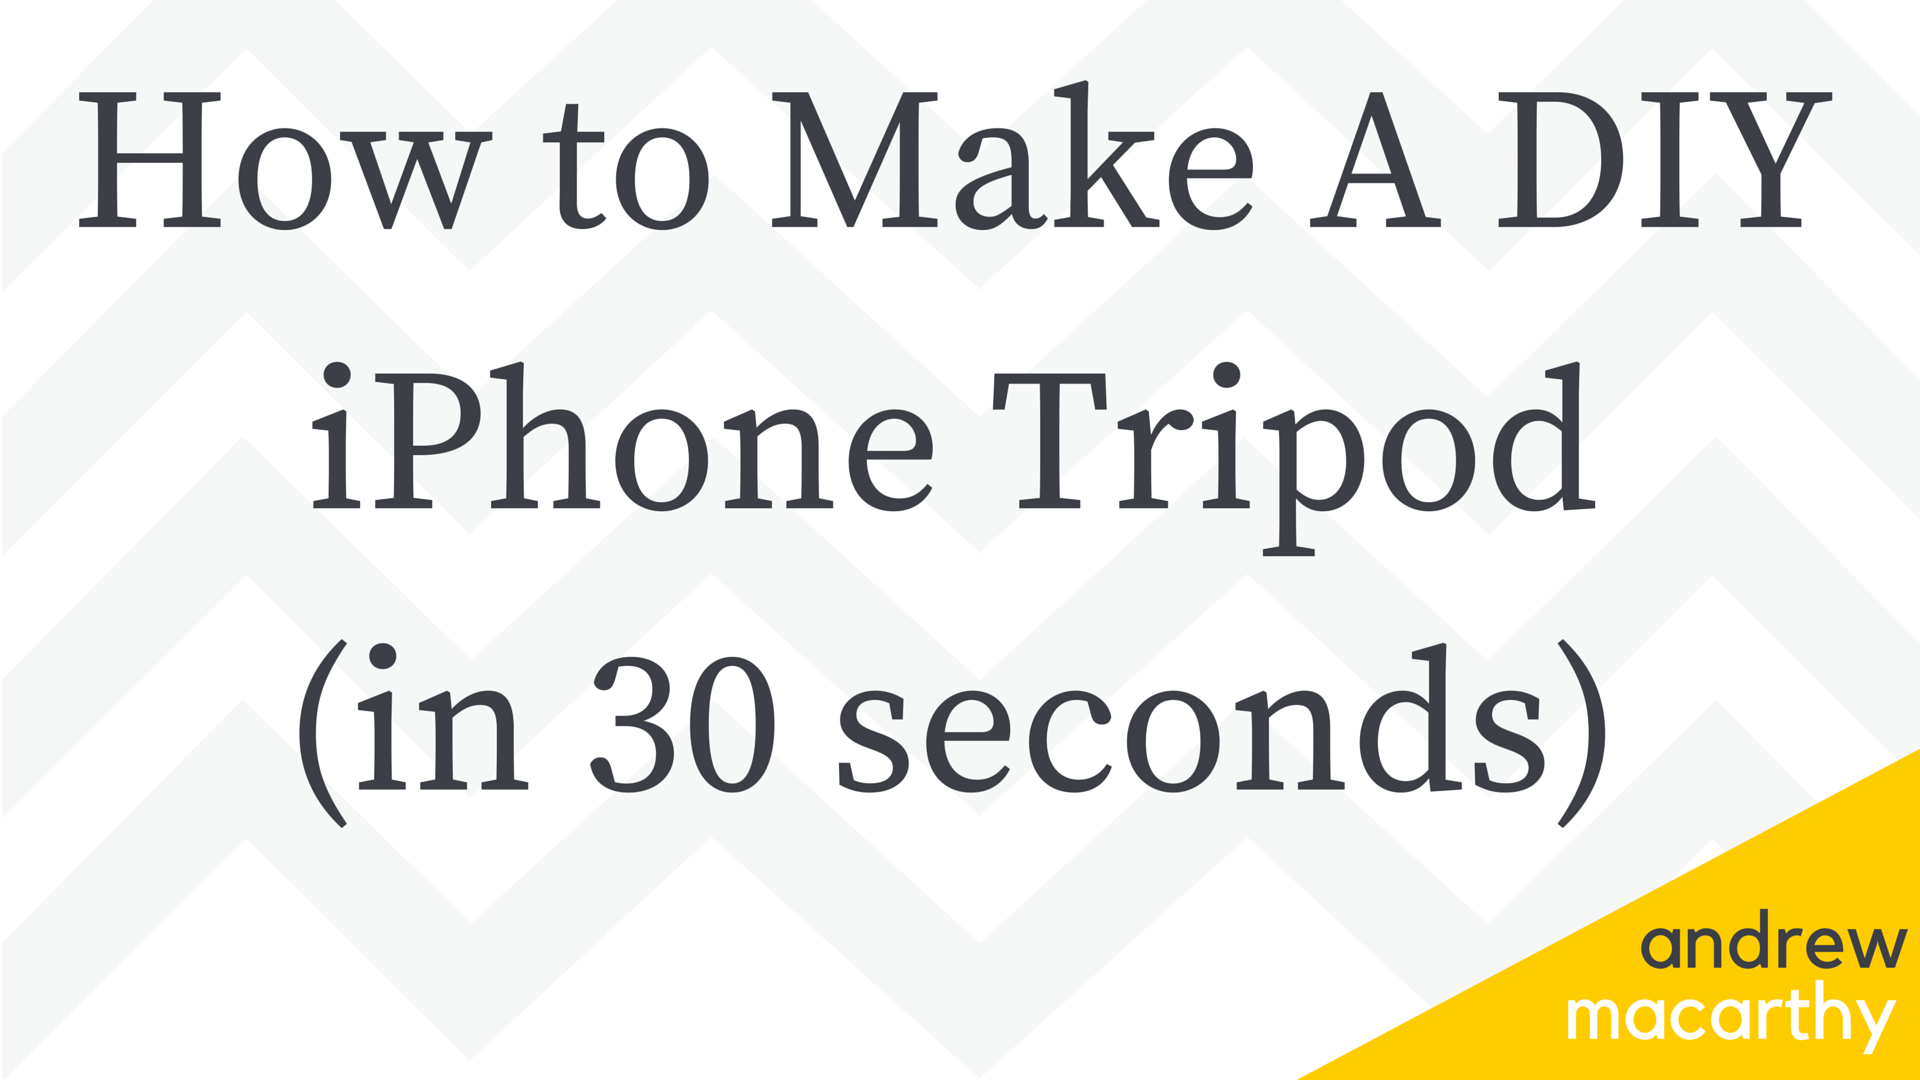 How to Make a DIY iPhone (Mobile Phone) Tripod Stand - in 30 Seconds!